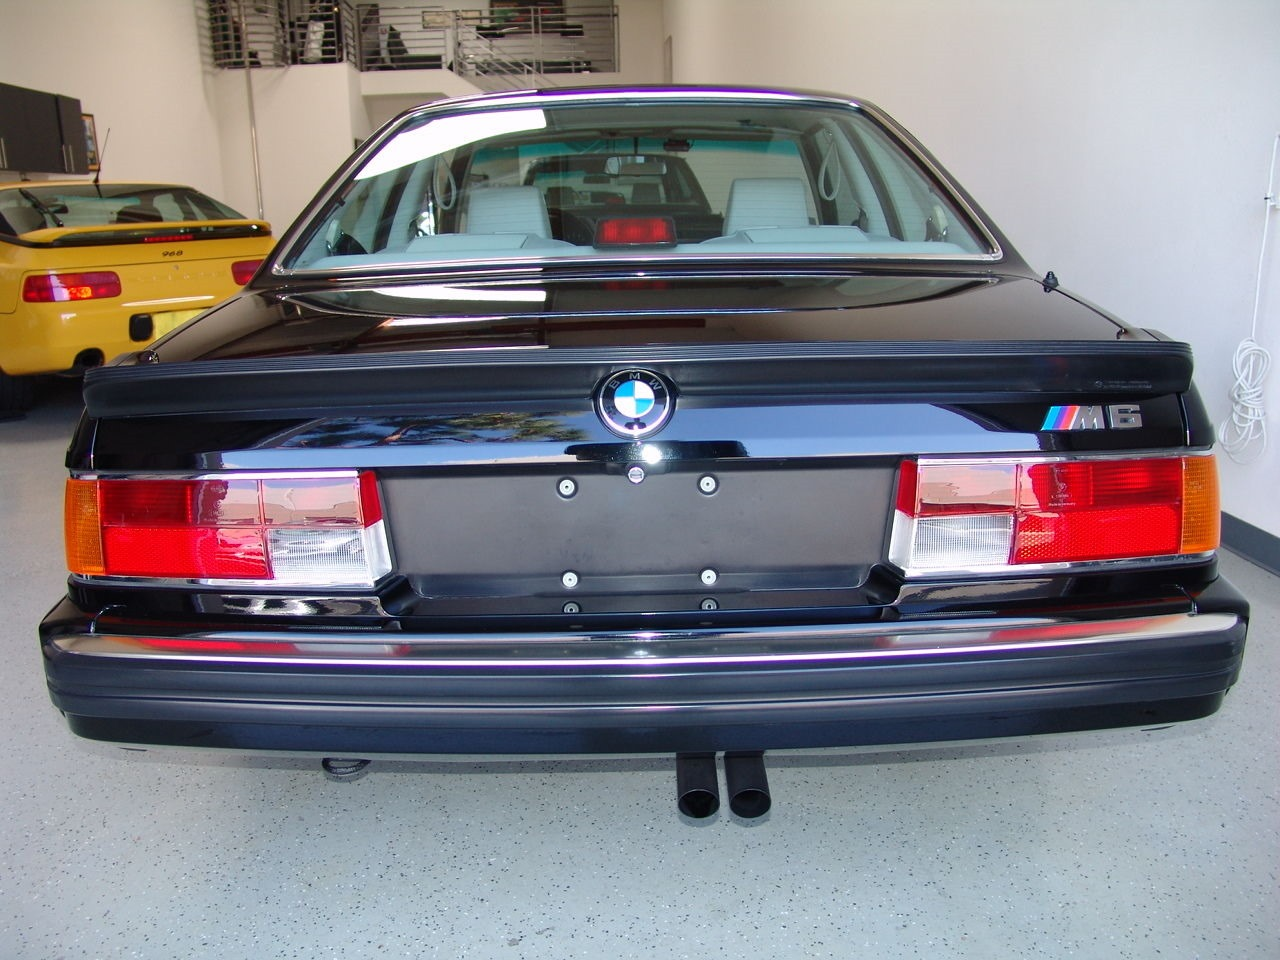 BMW M6 I (E24) 1983 - 1989 Coupe #4